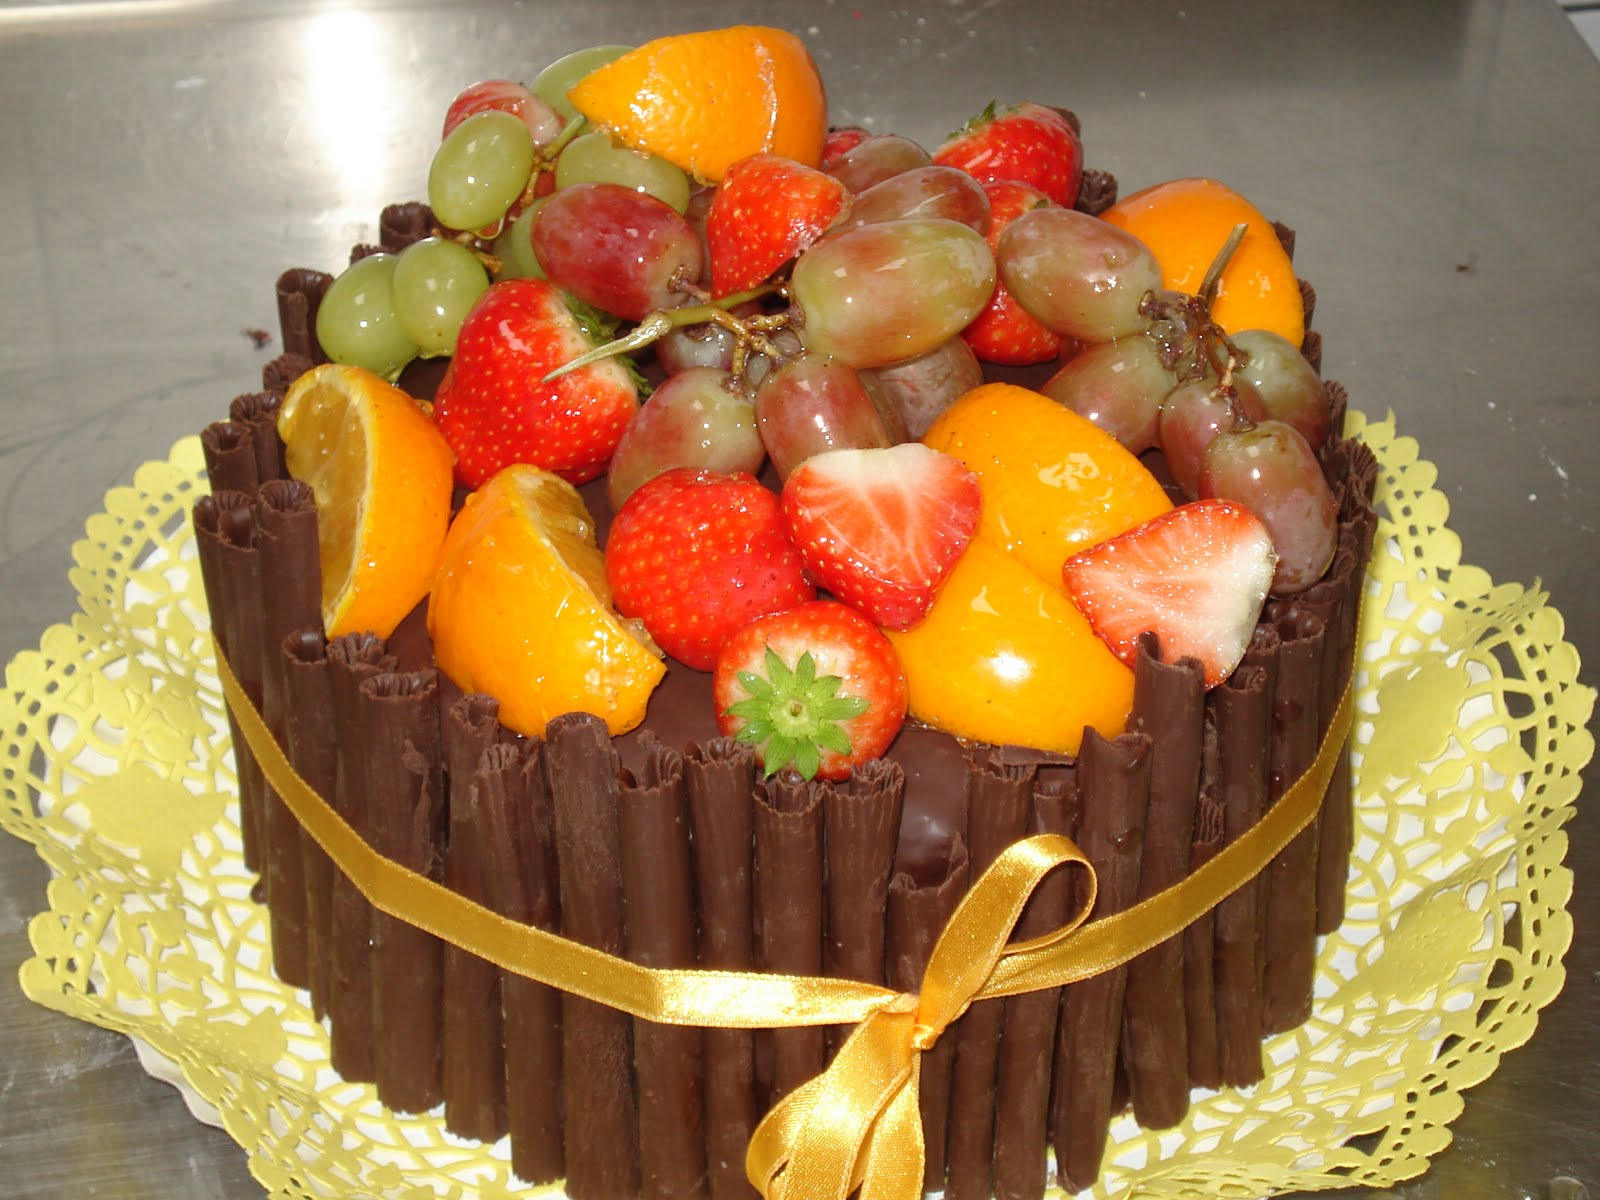 Cake With Fruit Topping : Brigitta s Cakes: Chocolate cake with rich fruit topping